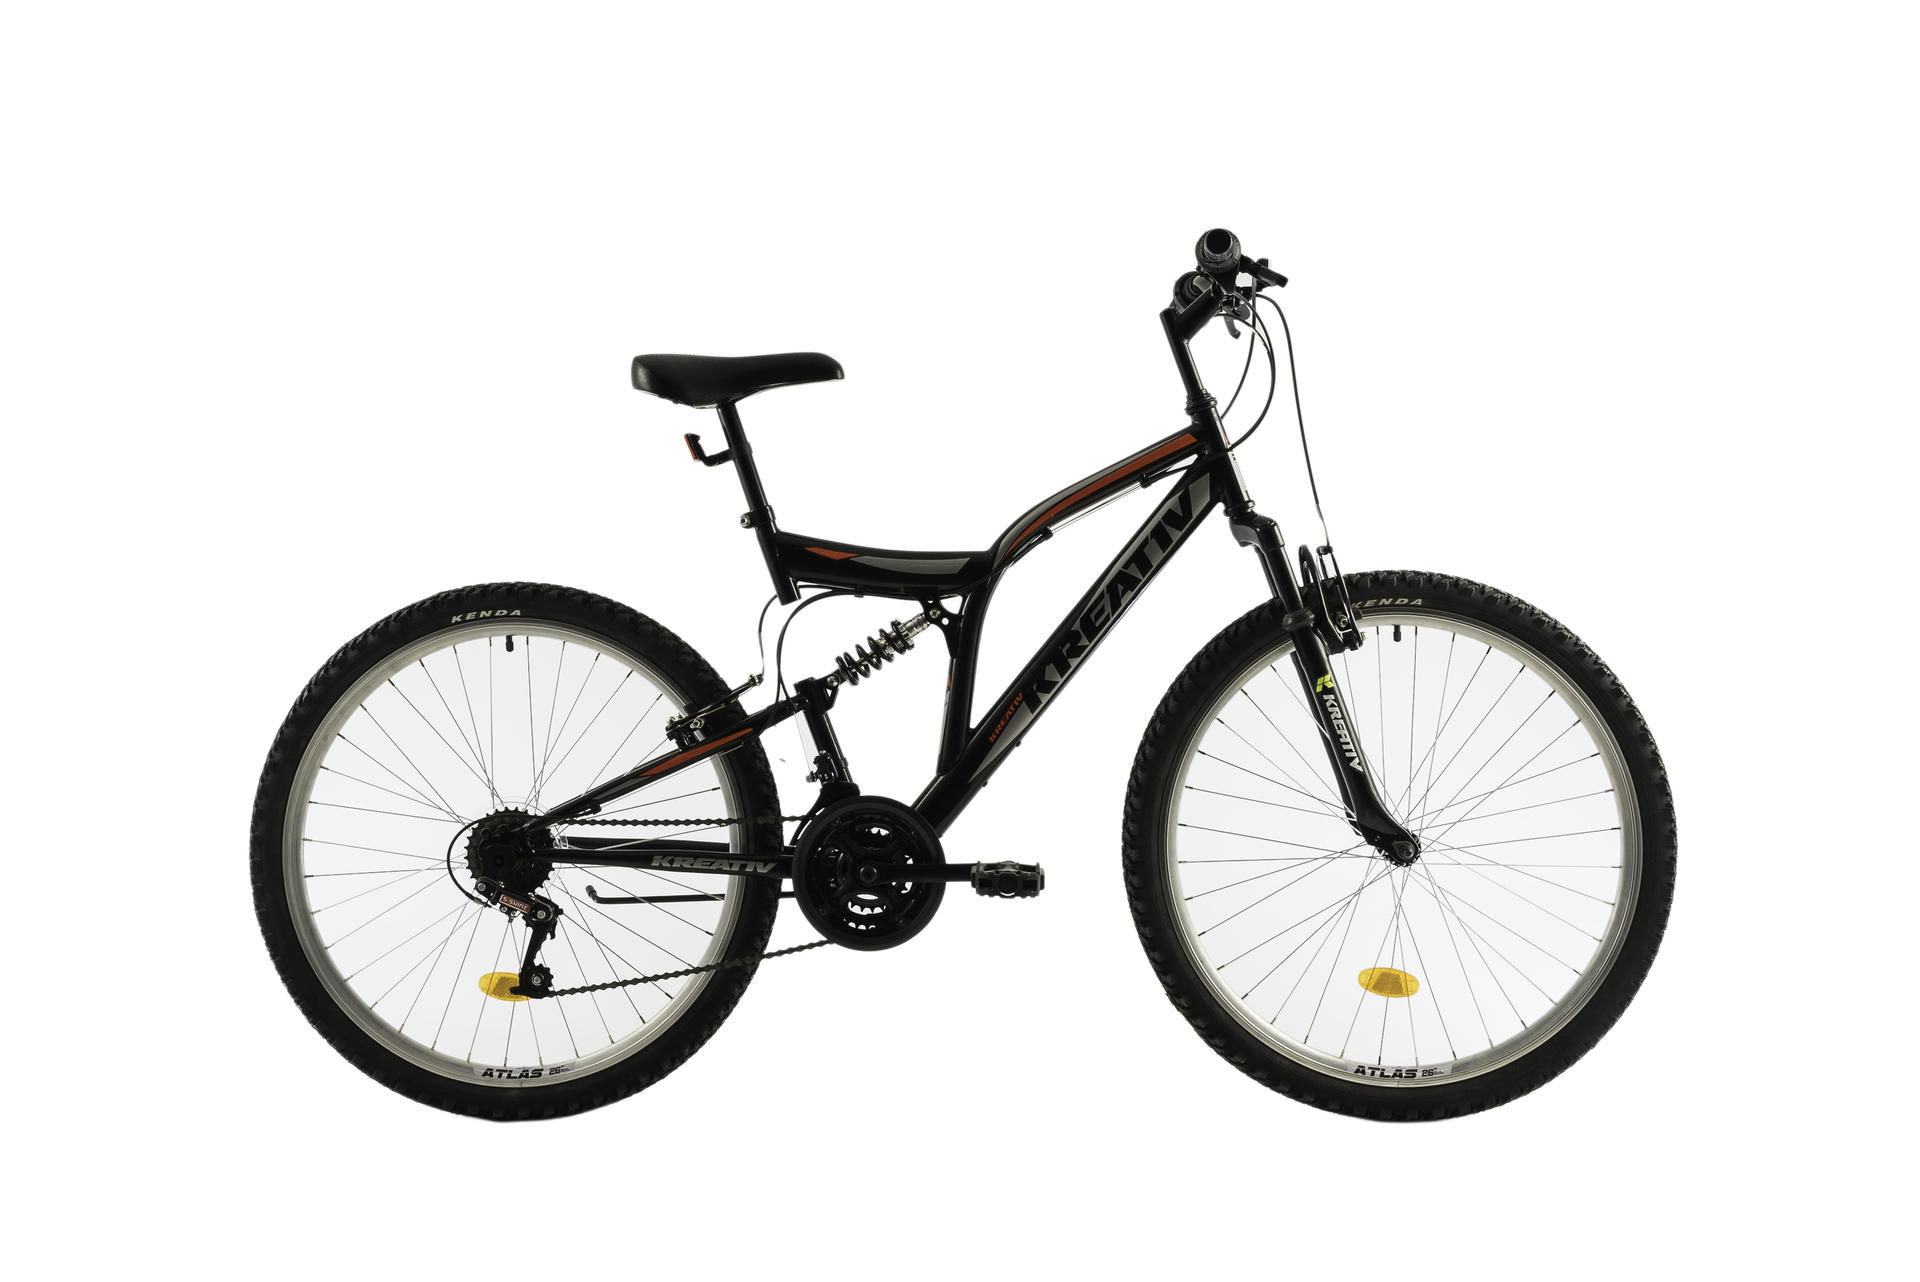 Mountain bike Kreativ 2641 Black